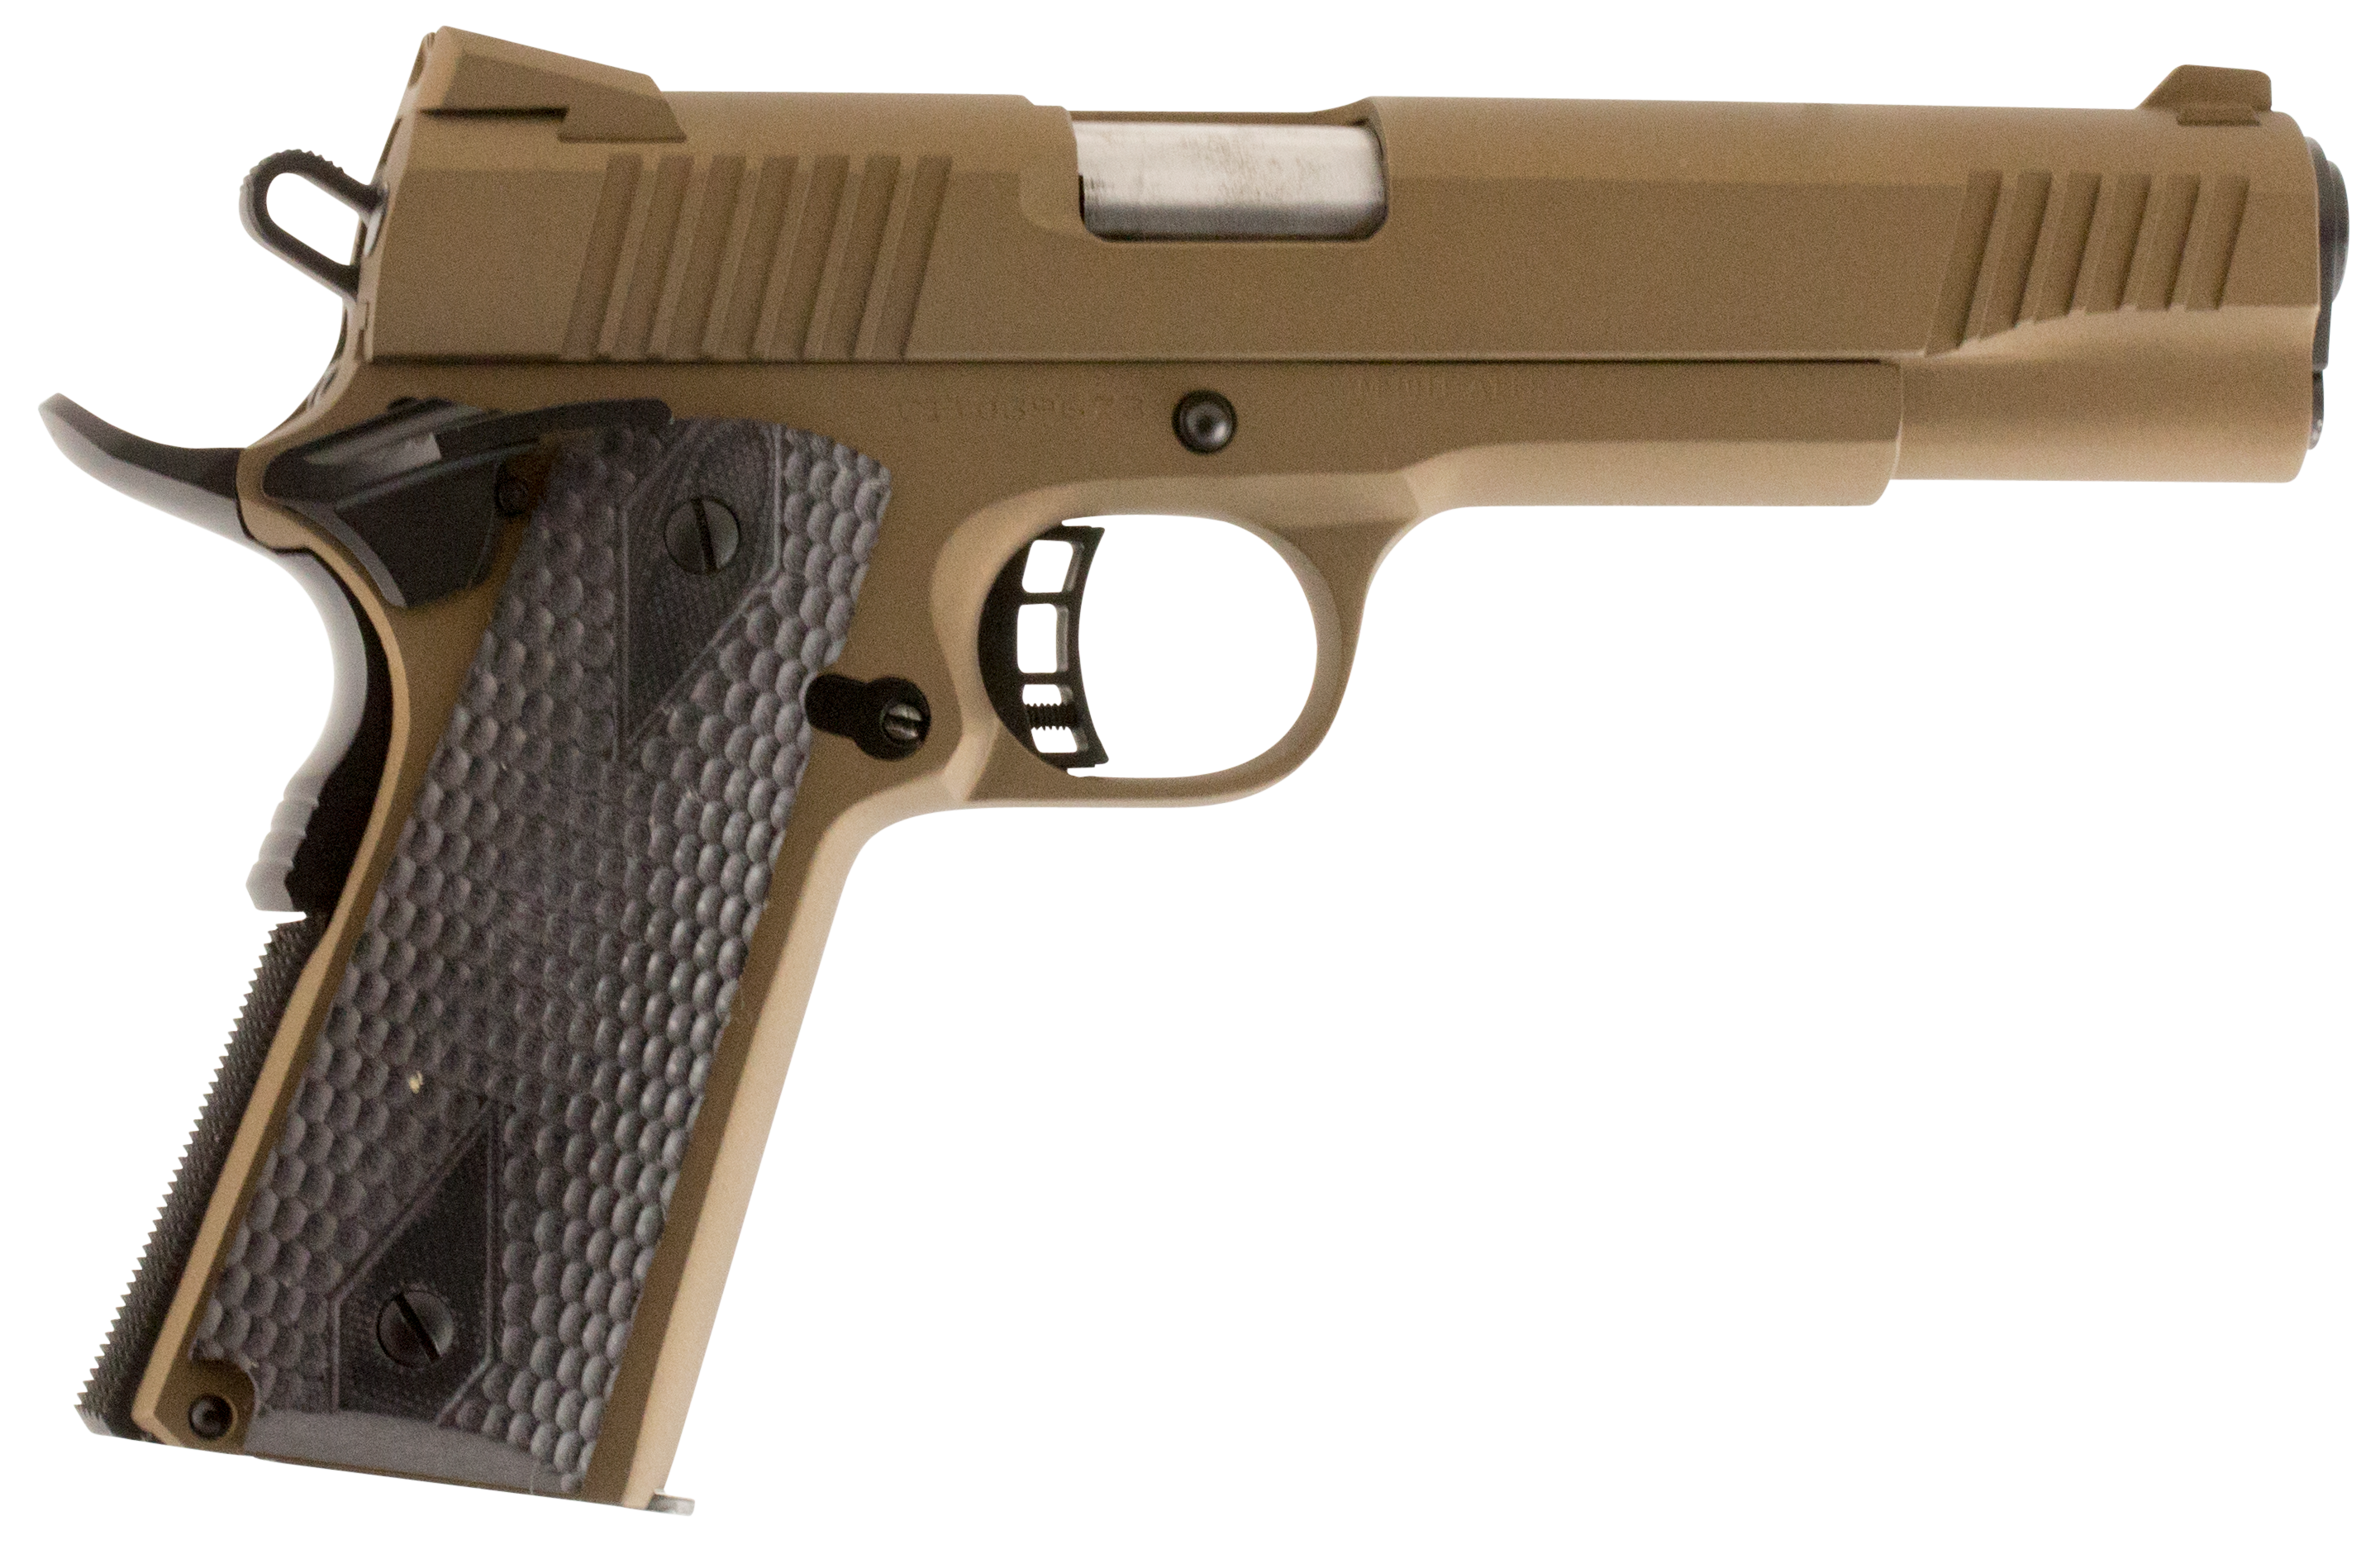 Citadel C9MMFS148H00 M-1911 Government Full Size SAO 9mm 5